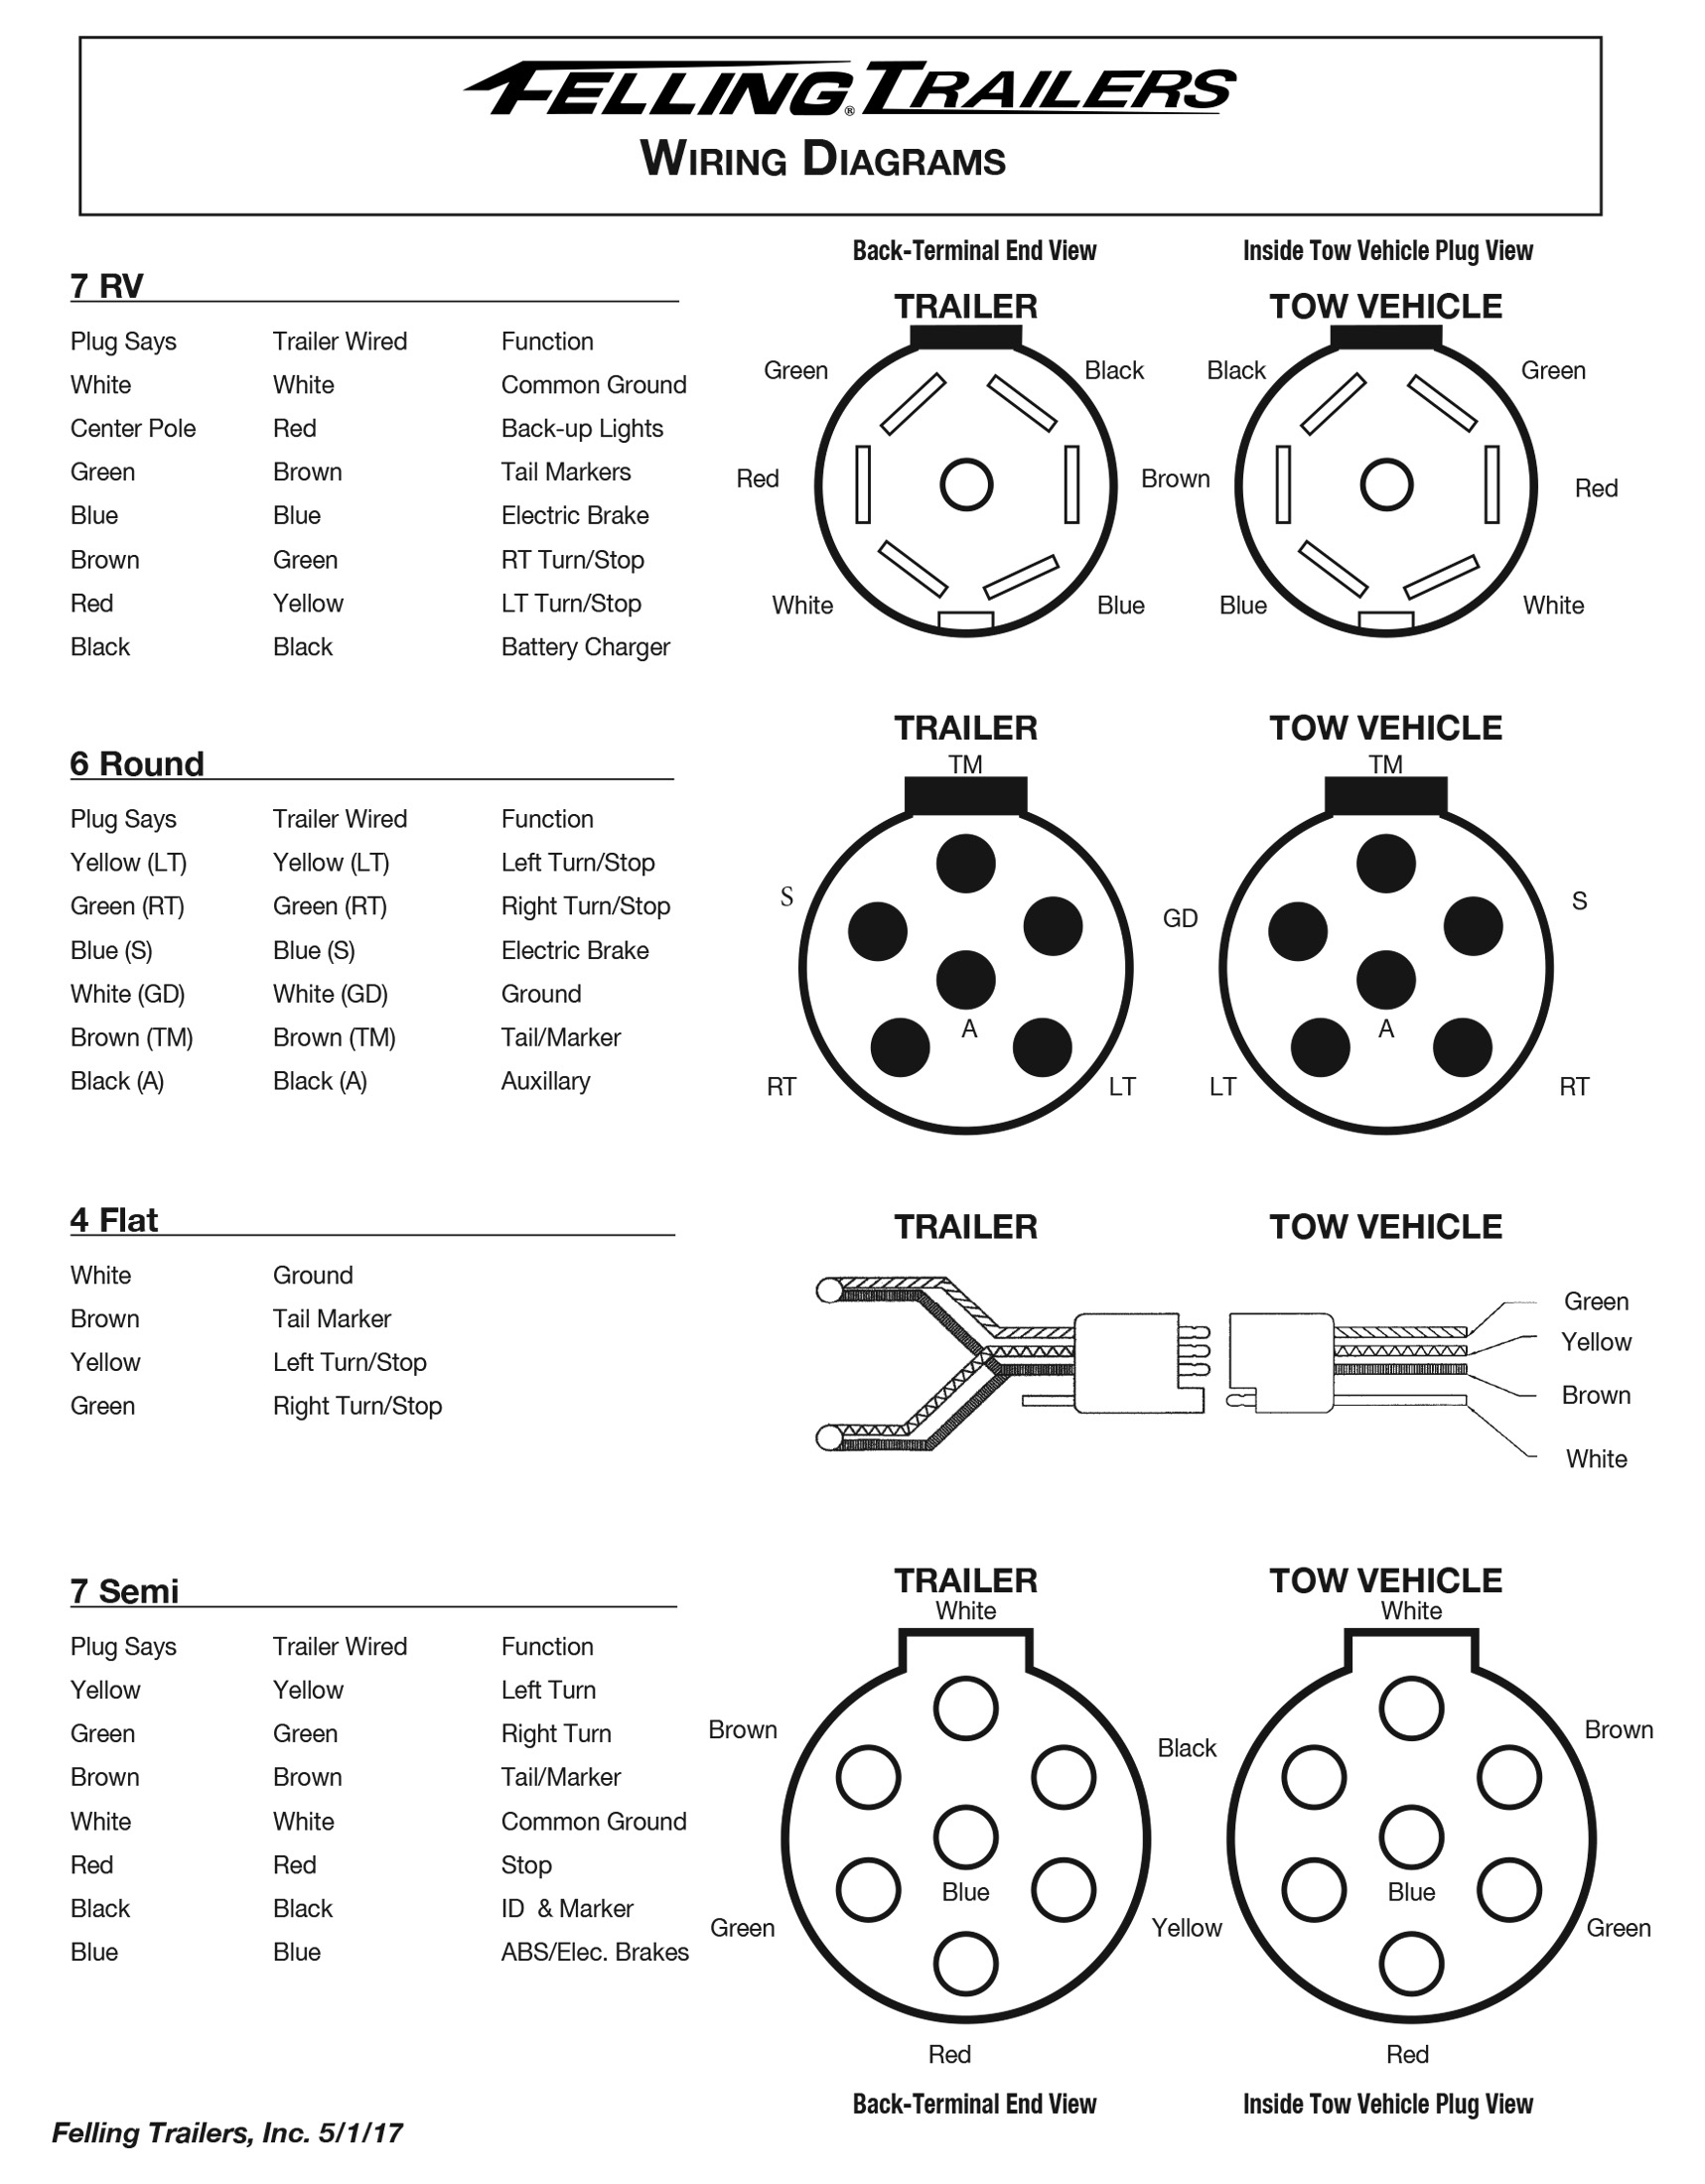 Service- Felling Trailers Wiring Diagrams, Wheel Toque - Wiring Diagram For 7 Blade Trailer Plug